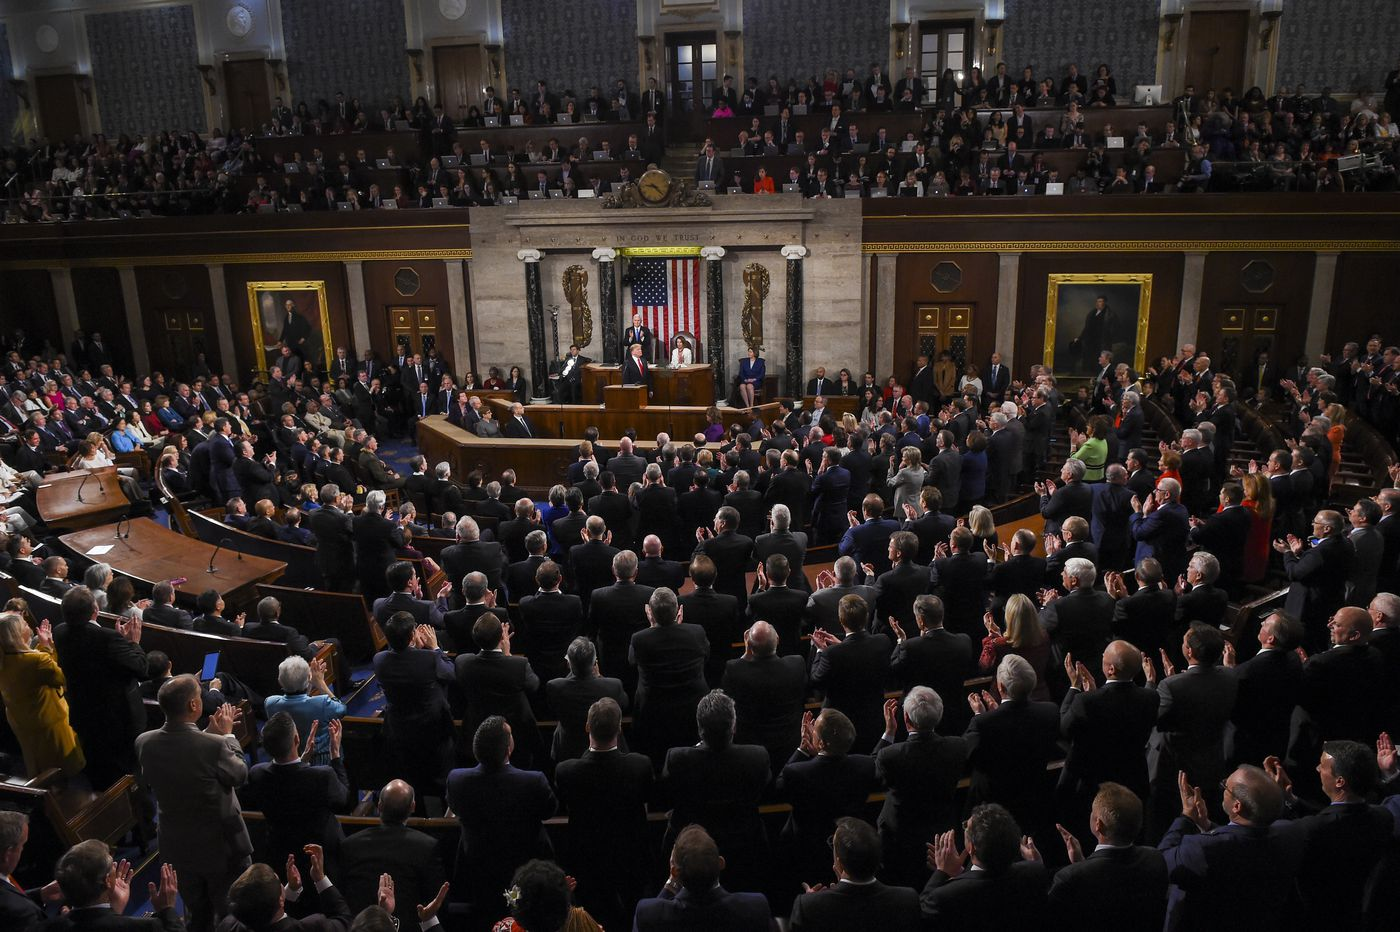 The State of the Union address skipped the most pressing crises of our time | Editorial